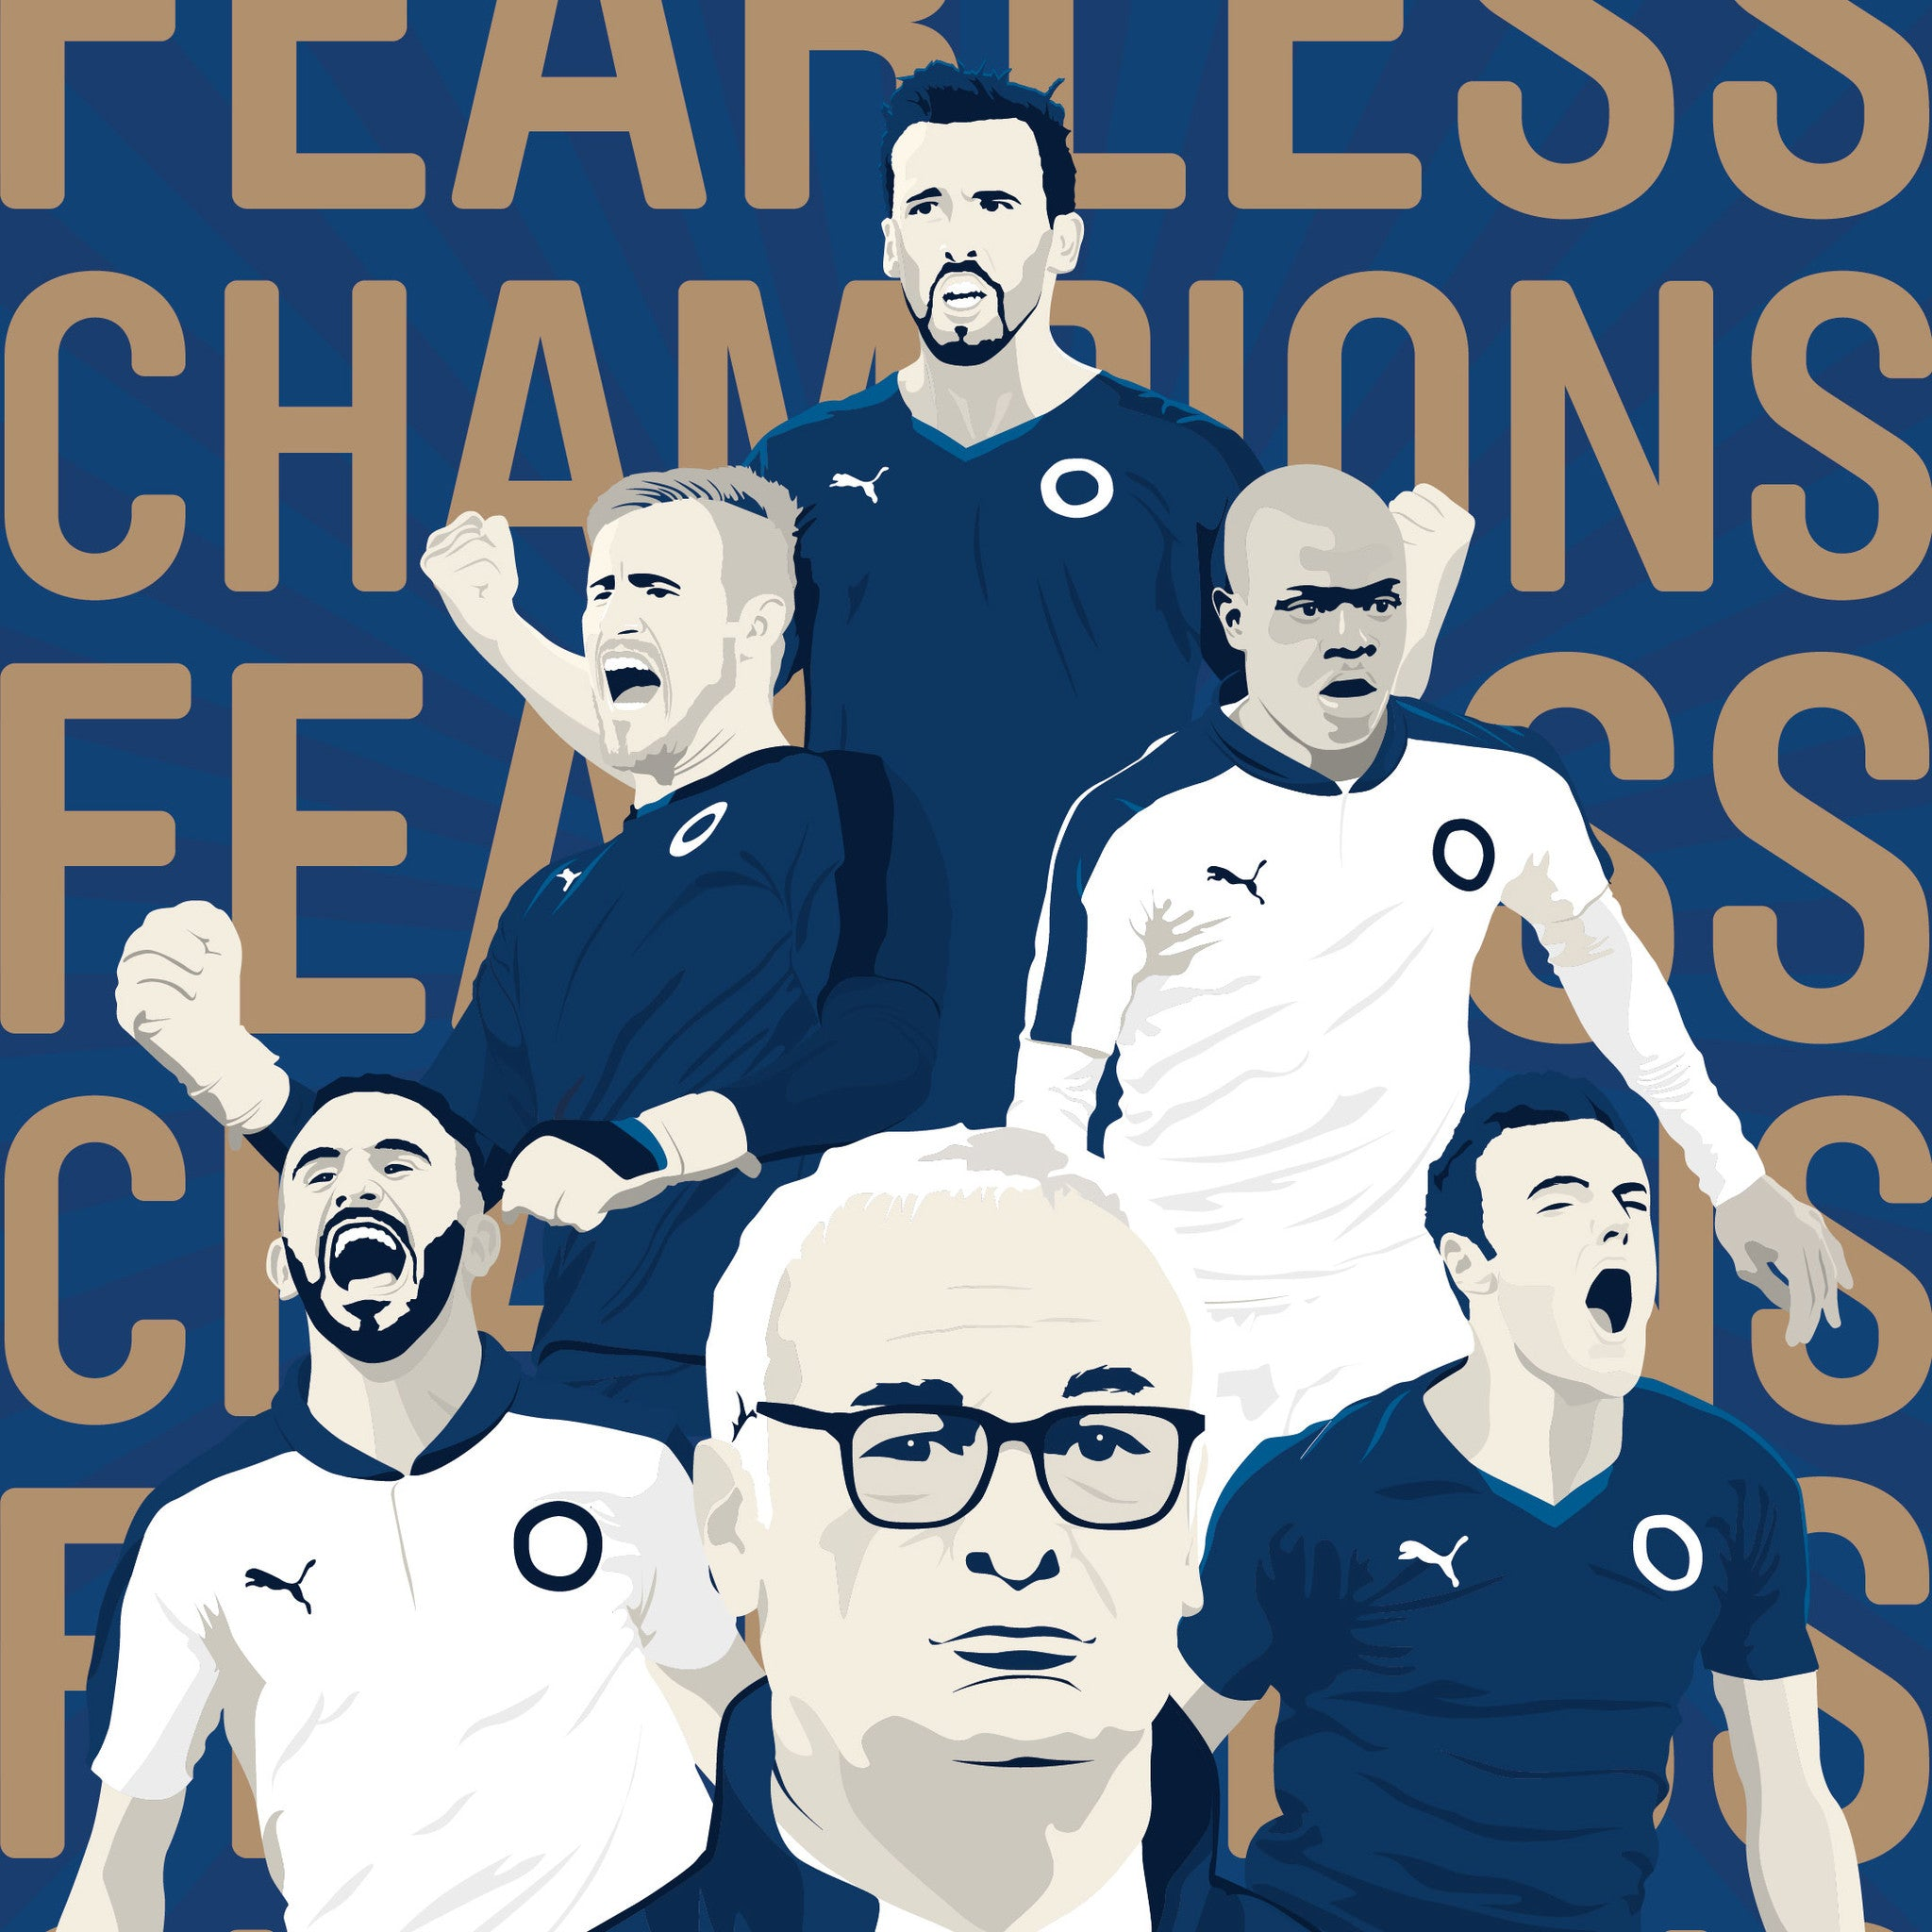 Champions 2015/16: Fearless Children's T-Shirt